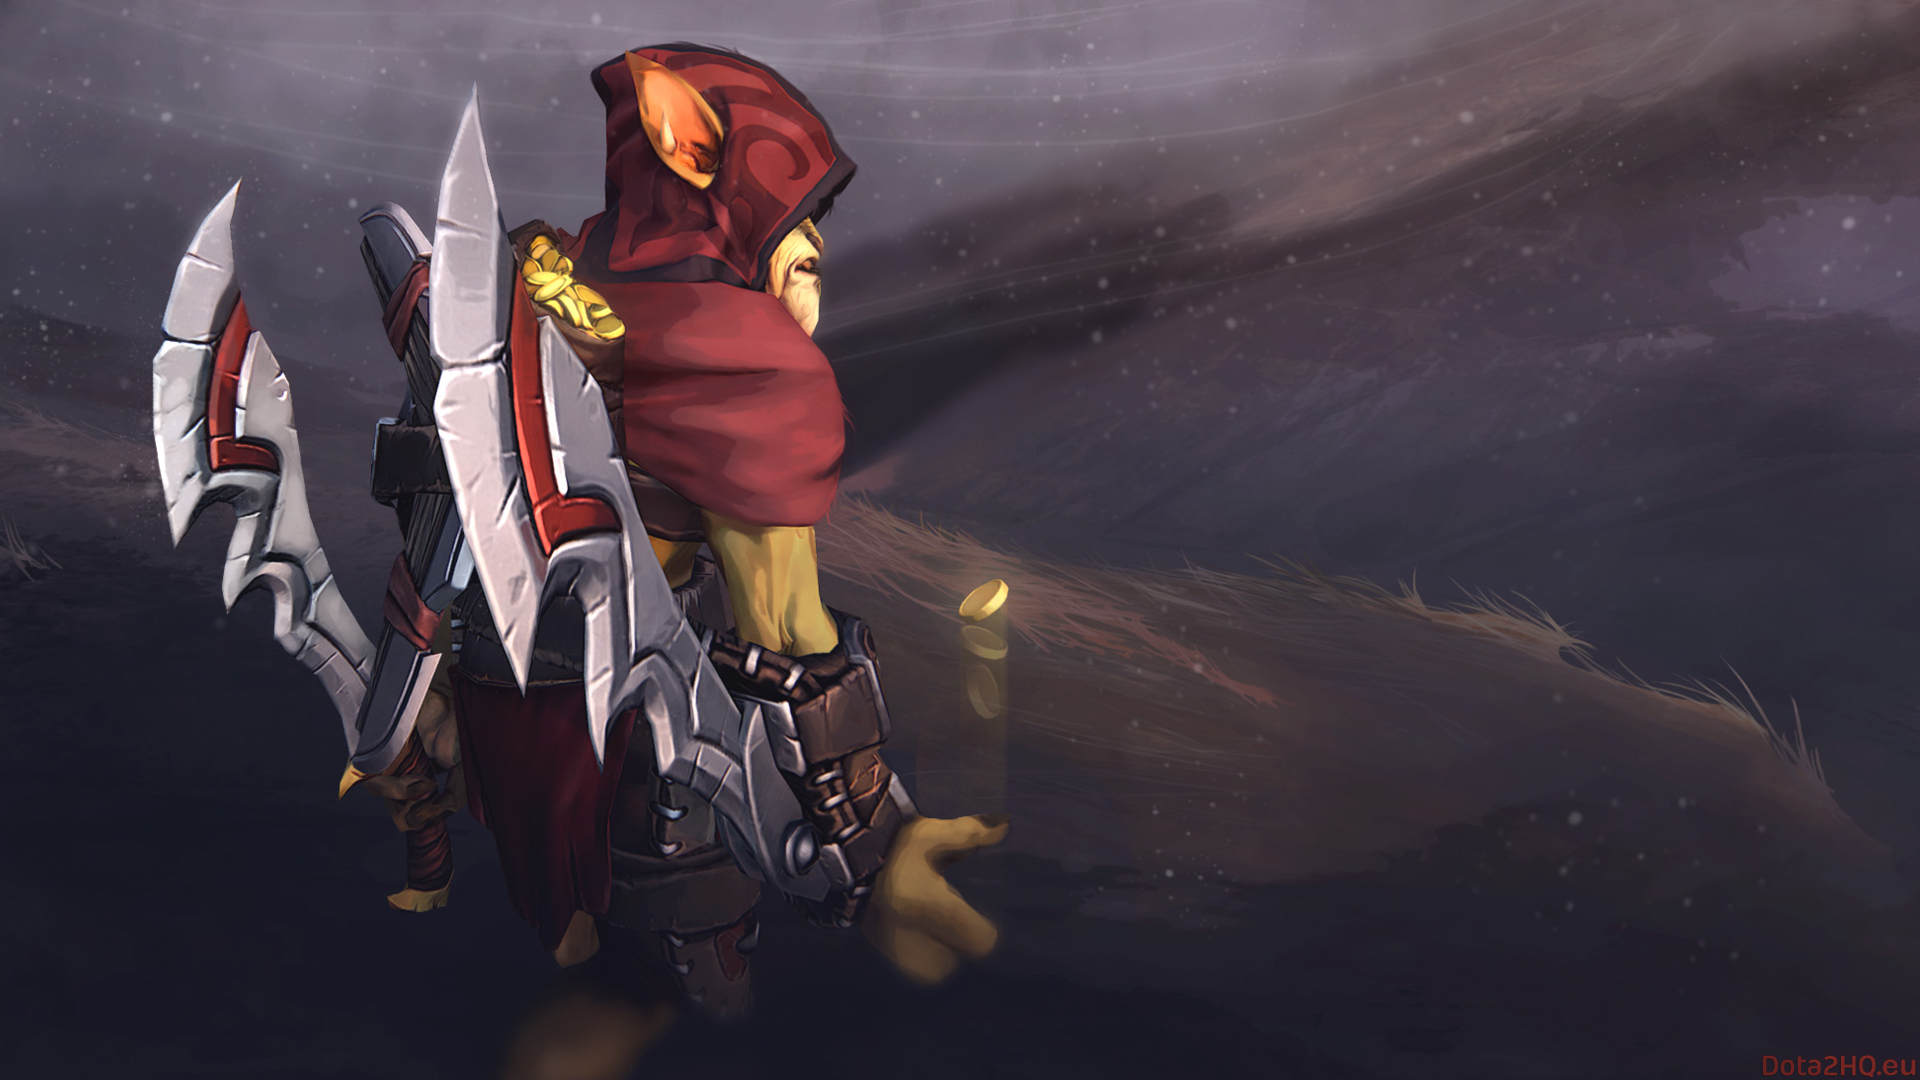 Twin Blades Assassin Dota 2 Bounty Hunter Wallpaper Hd Games 4k Wallpapers Images Photos And Background